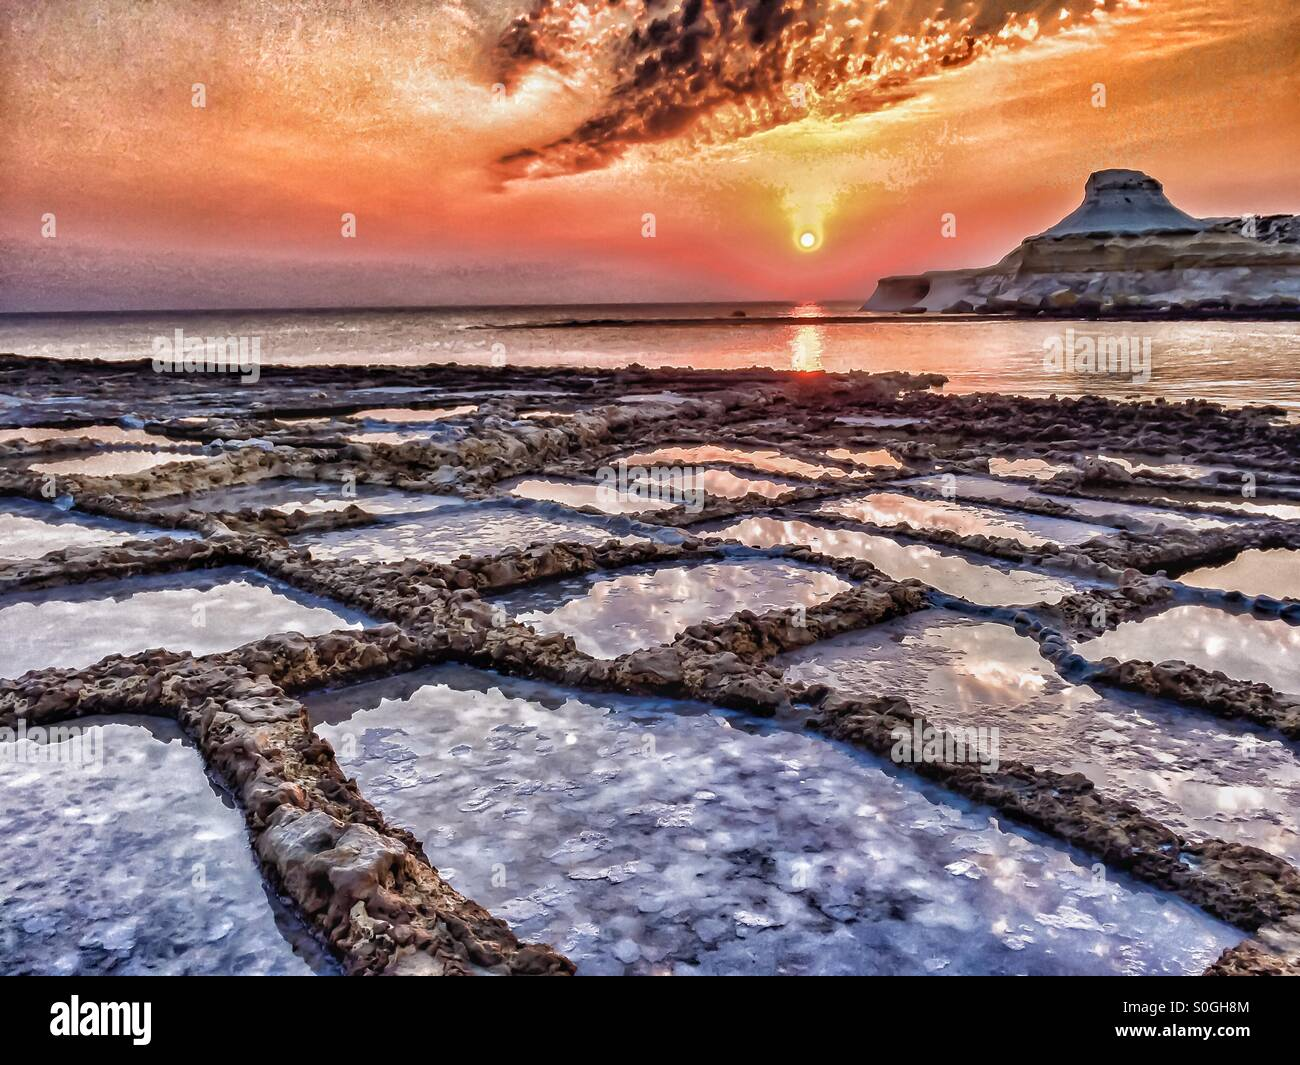 Dramatic sunrise over salt pans and calm sea - Stock Image